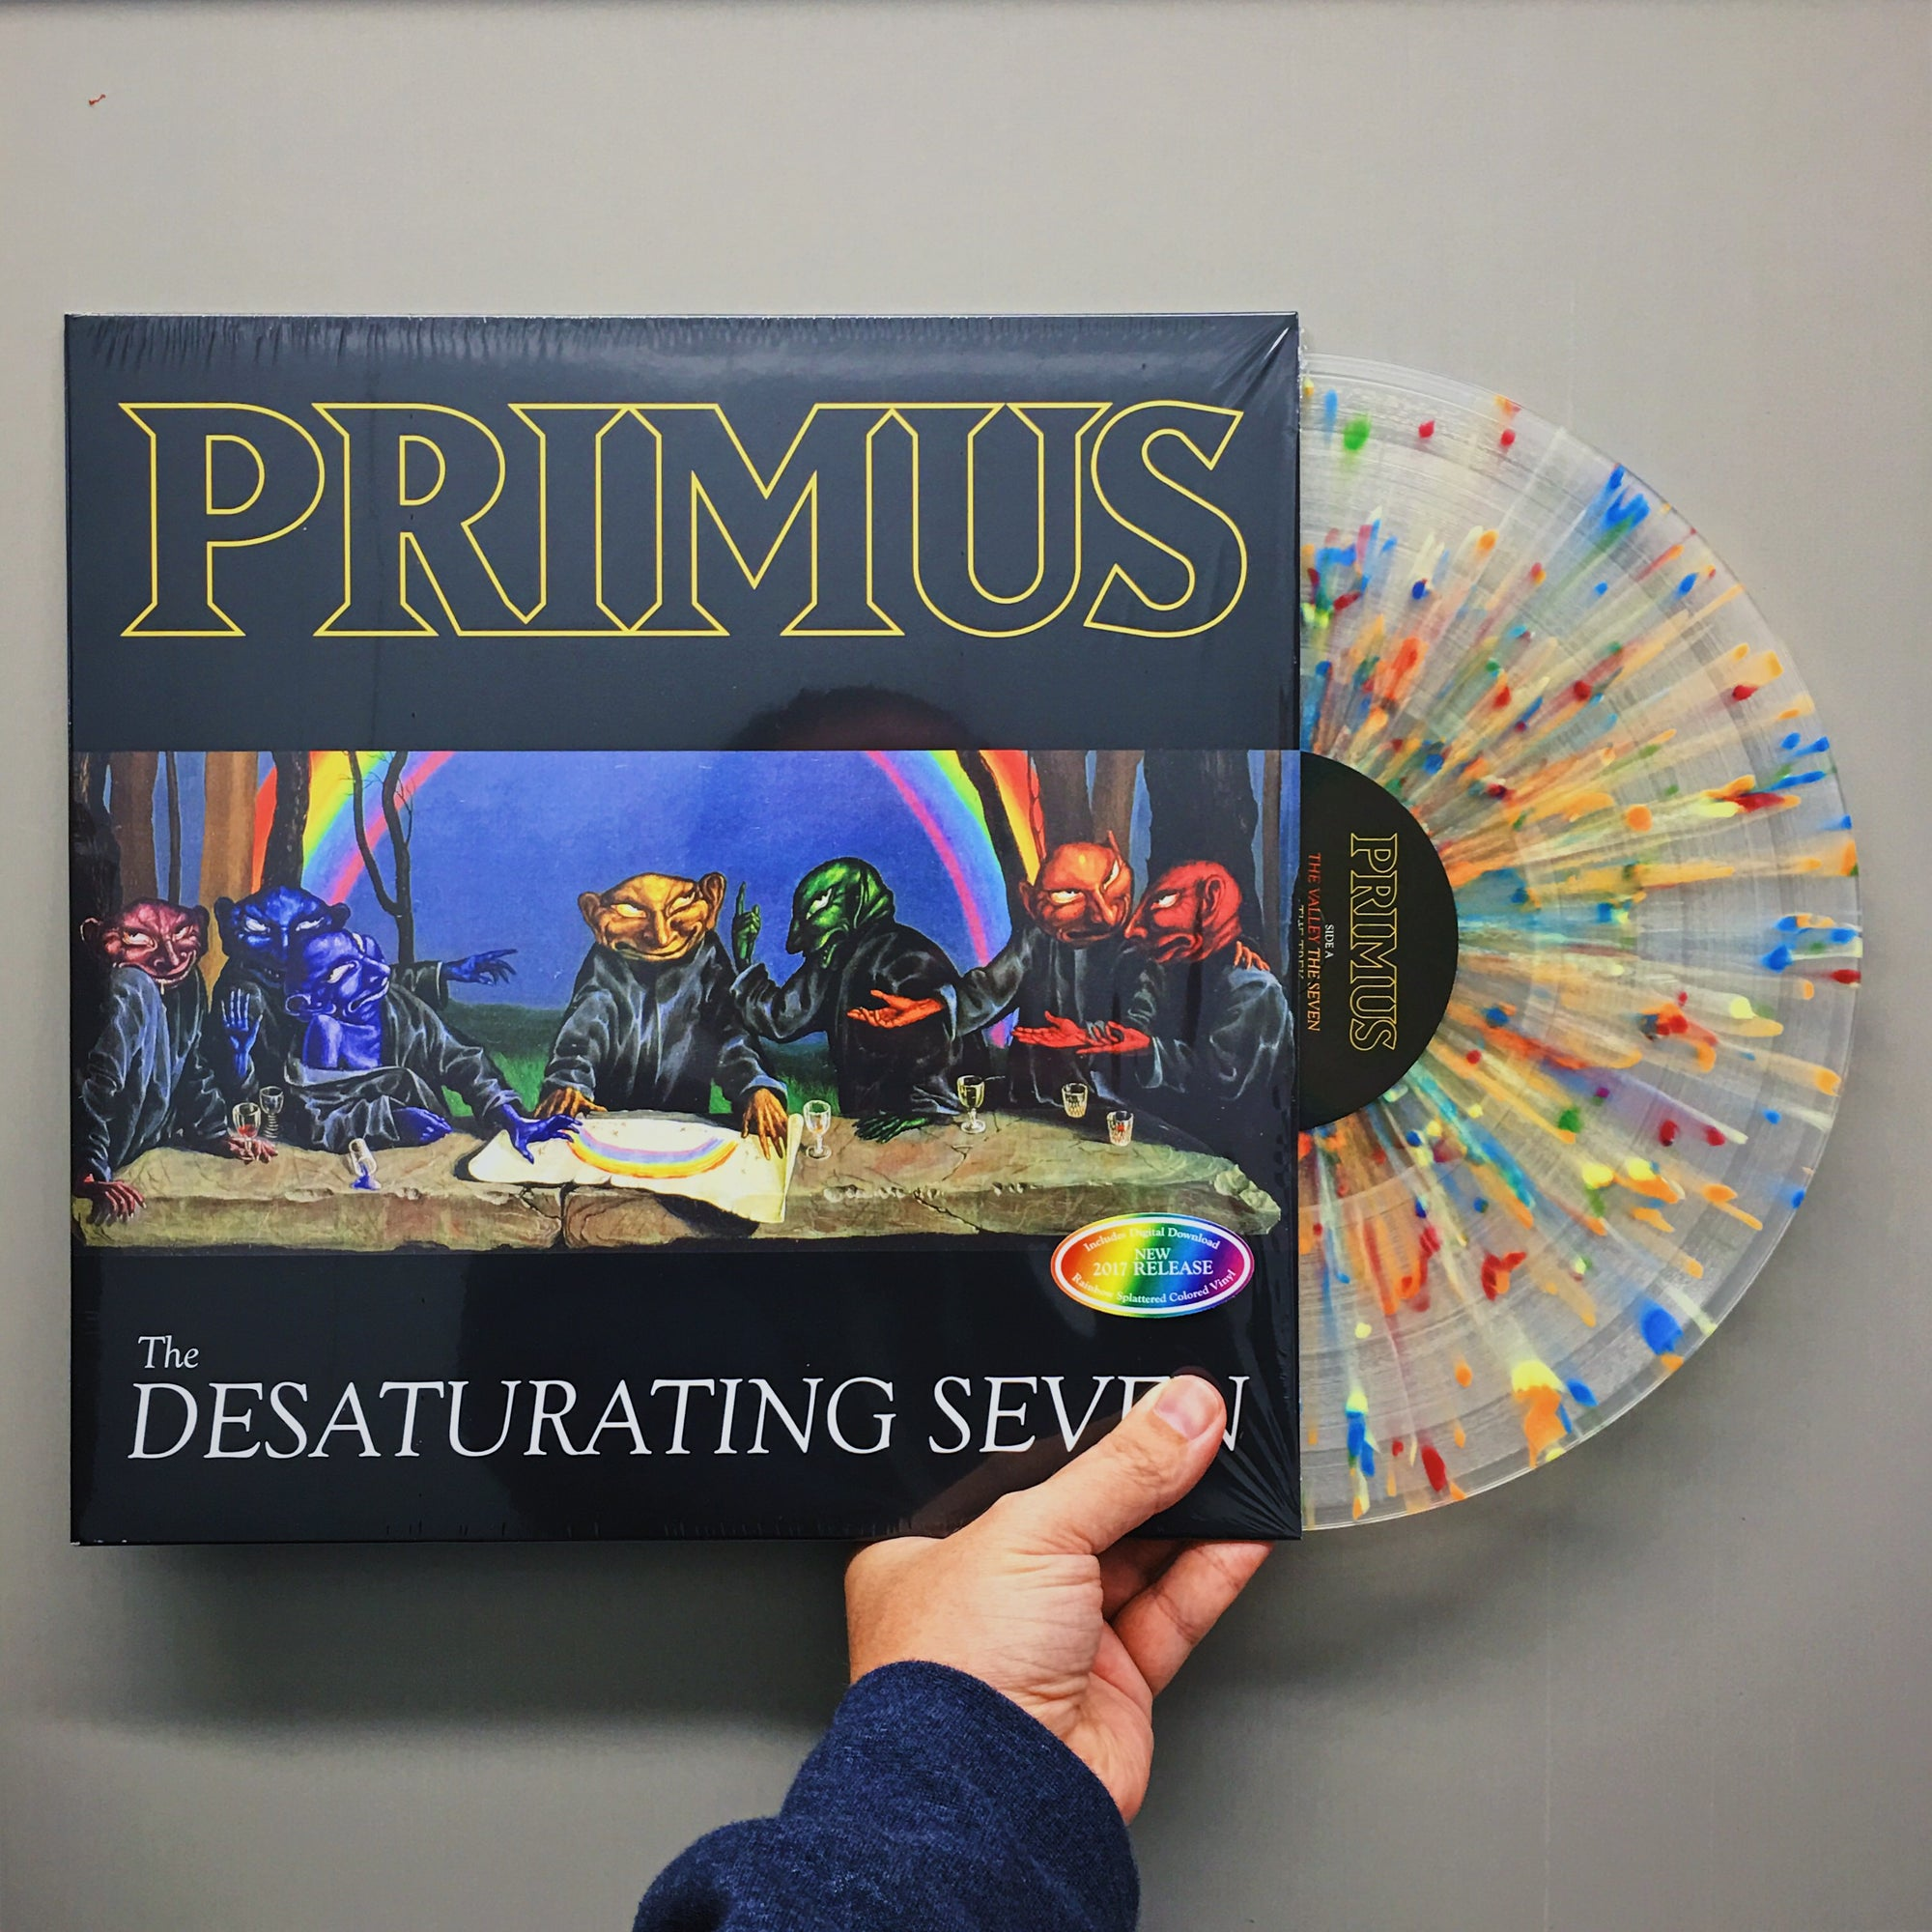 Primus Vinyl Chocolate Factory Zenberg Blogue Best Of